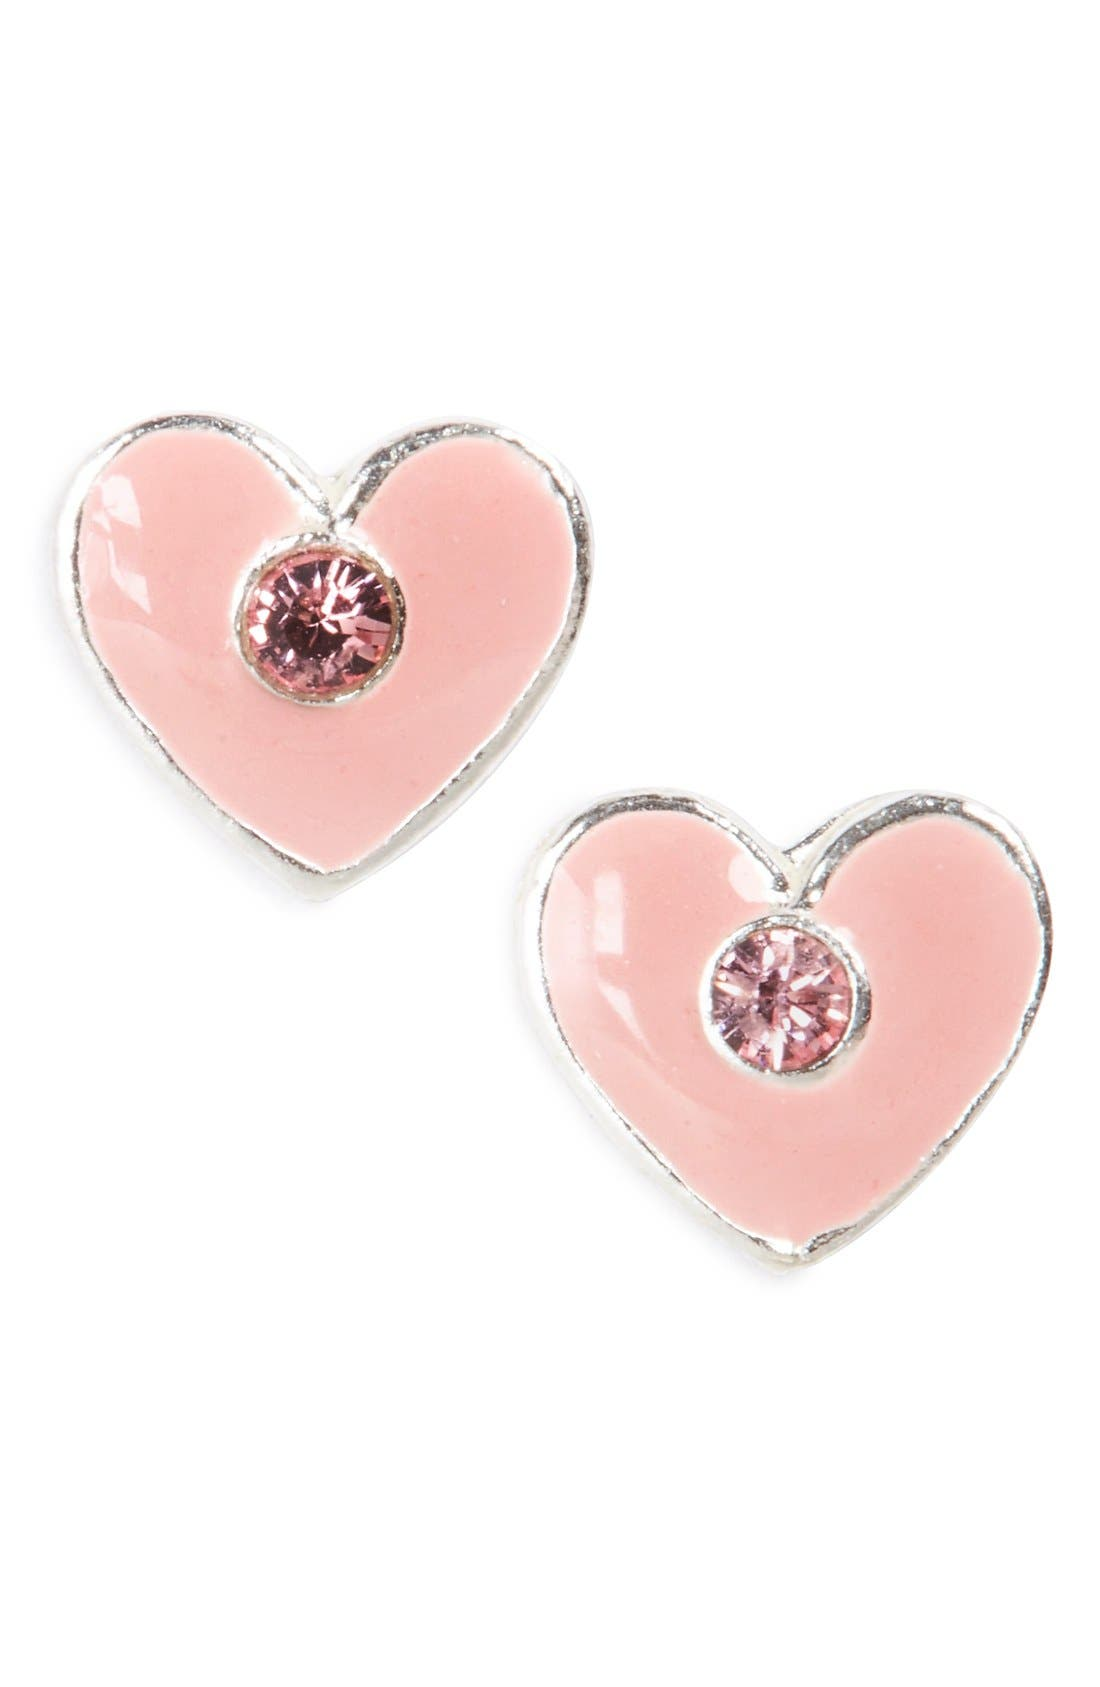 'Crystal Heart' Sterling Silver Stud Earrings,                         Main,                         color, Silver